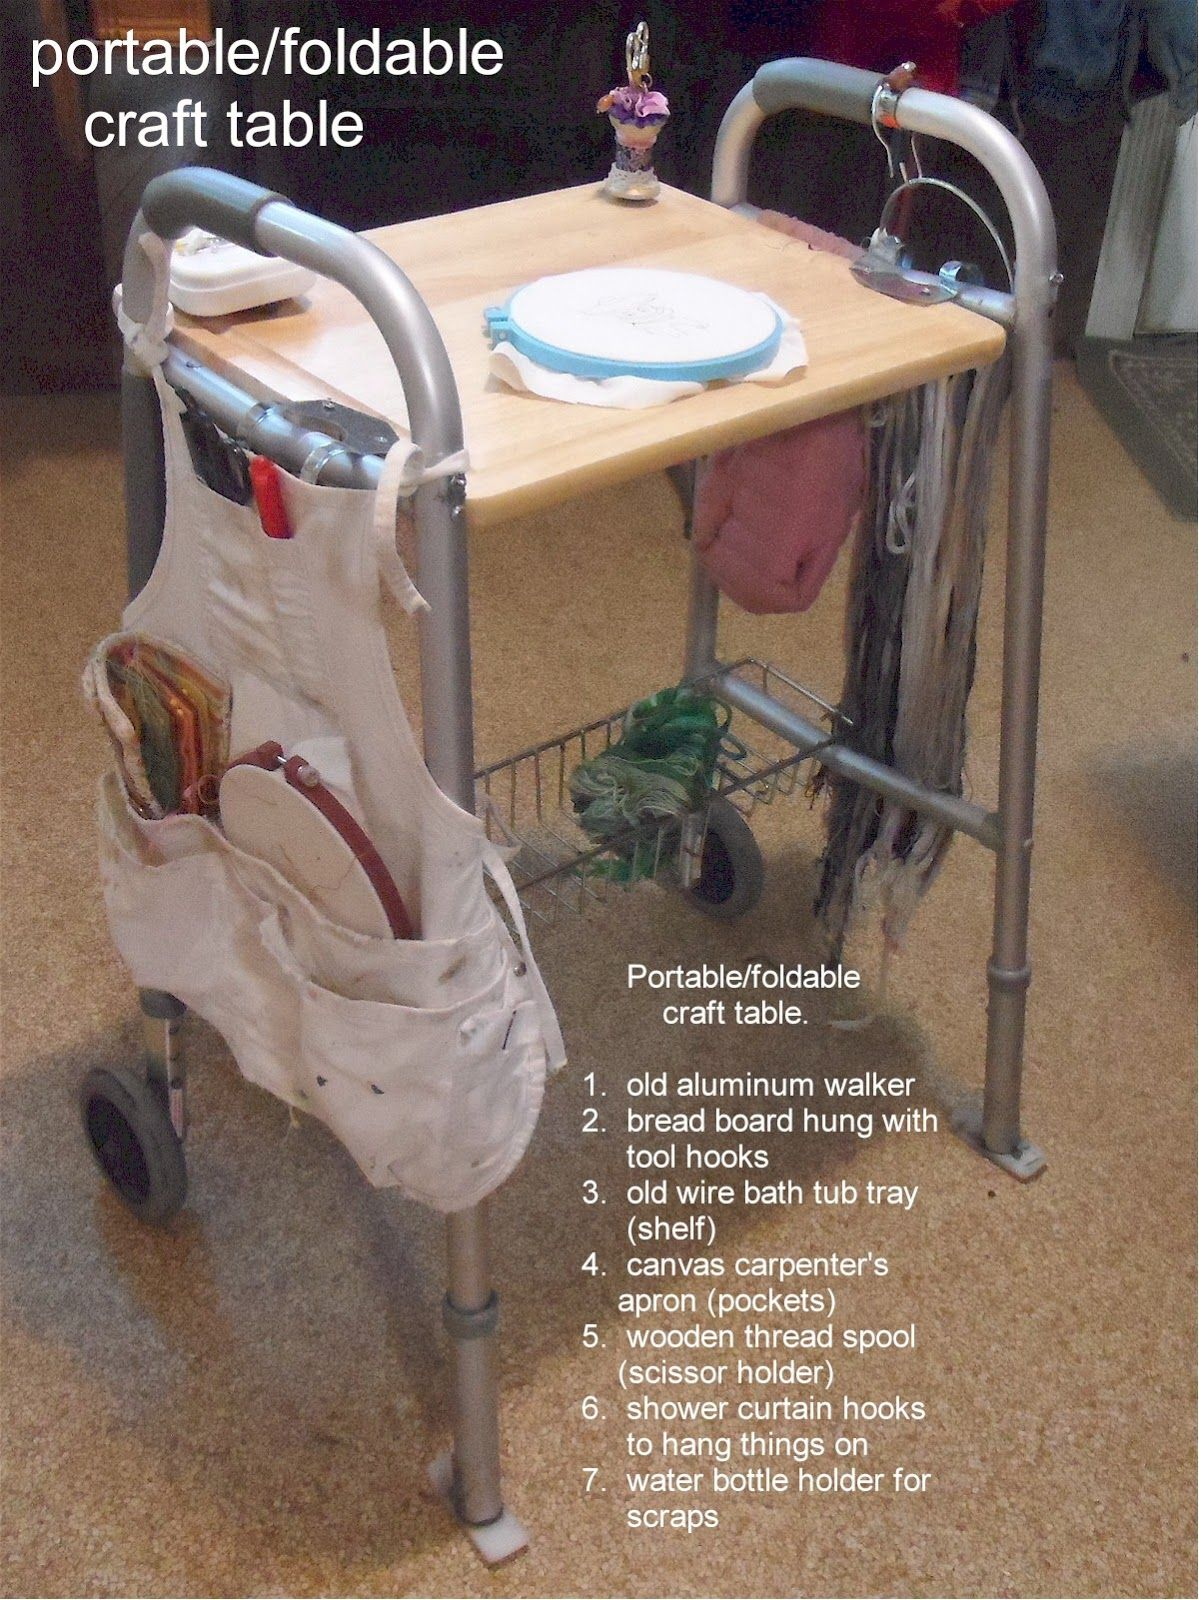 16+ Portable craft table on wheels info